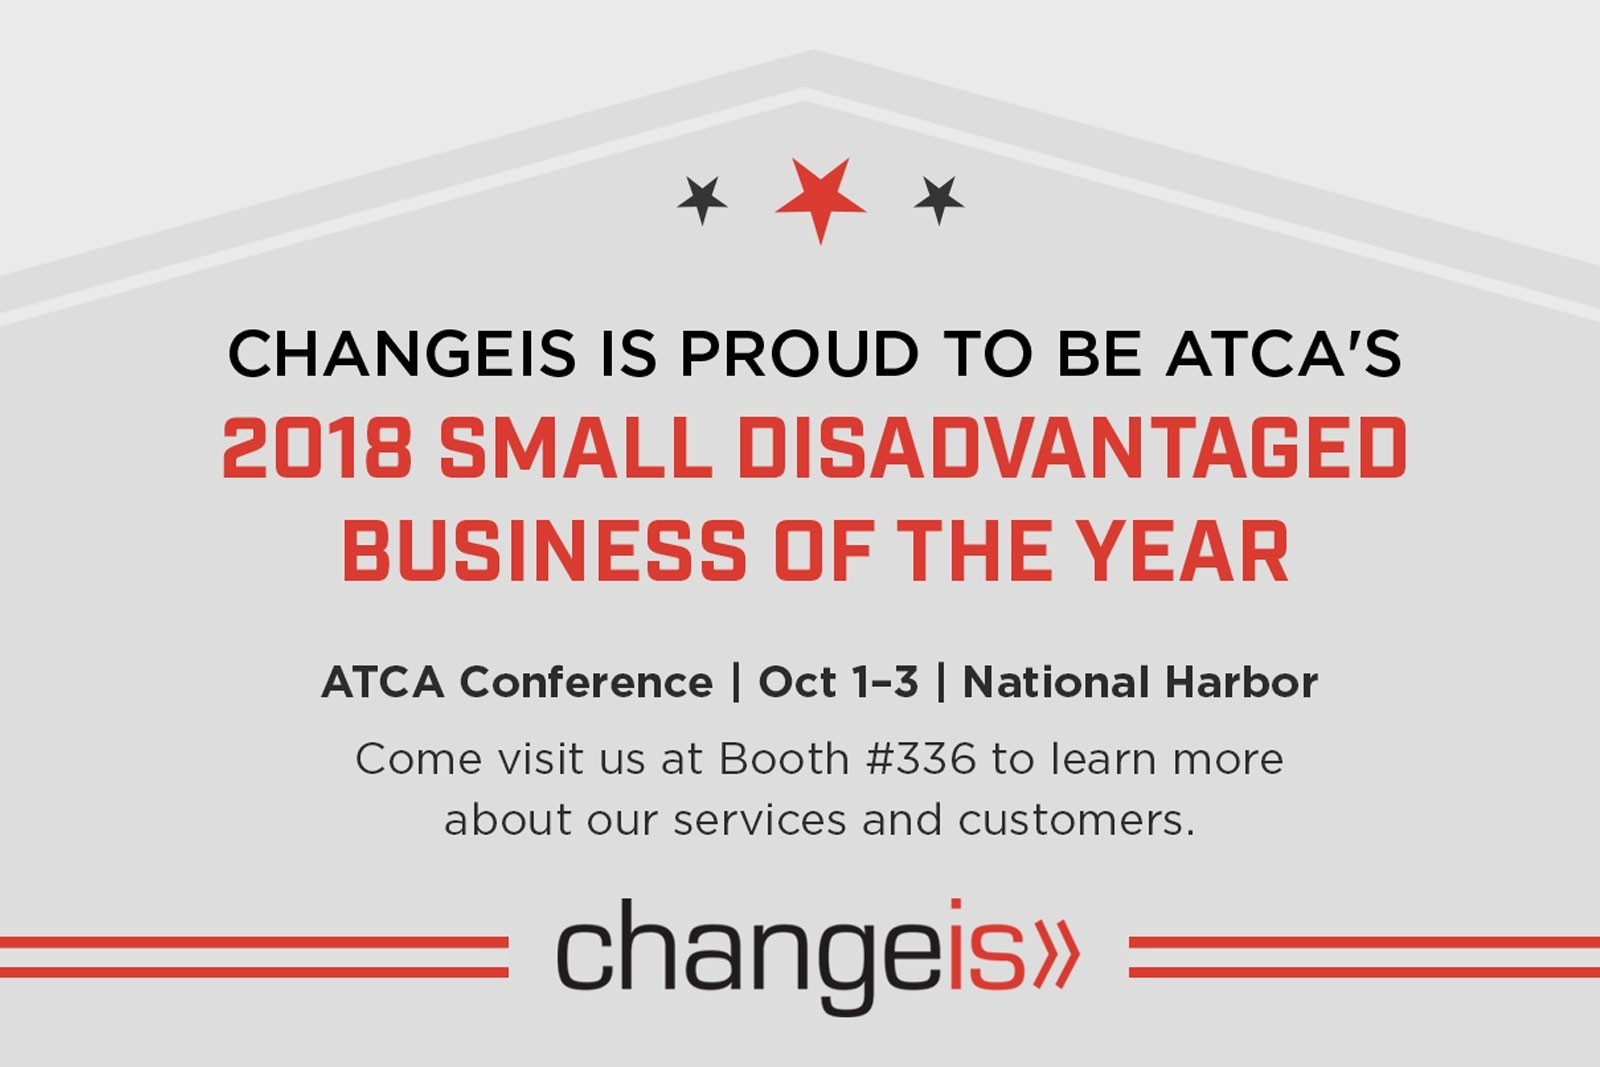 Changeis is 2018 Small Disadvantaged Business of the Year